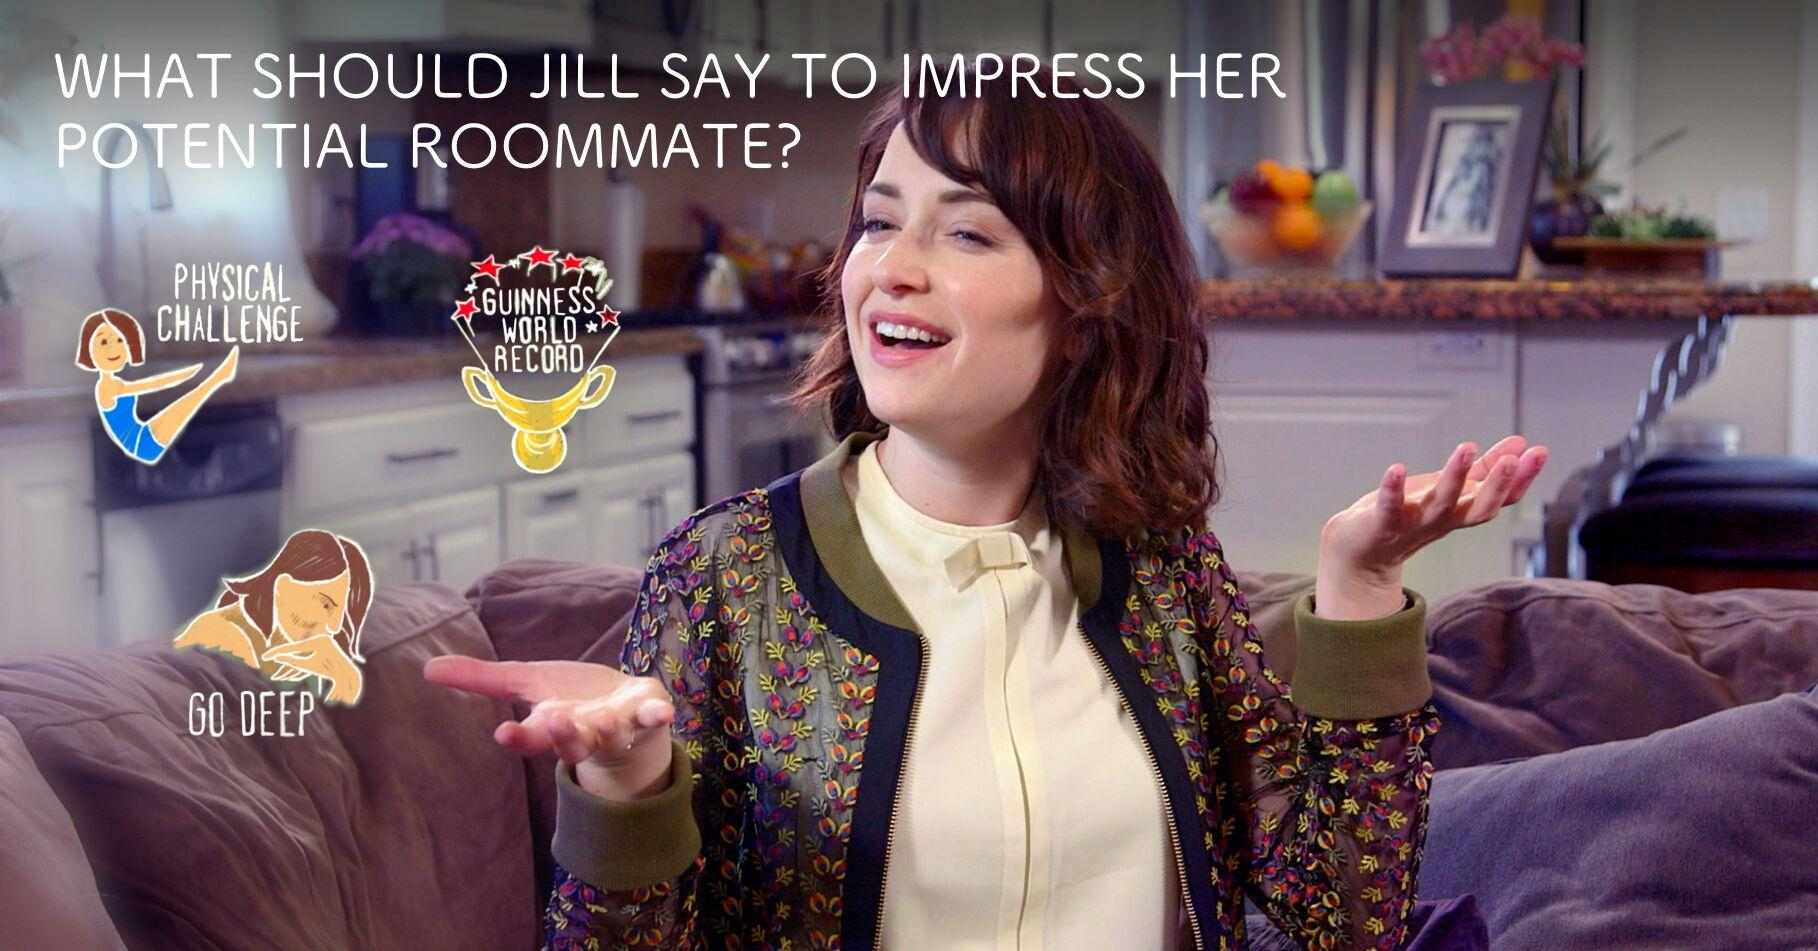 A screenshot of woman in a video, with icons that viewers can pick to determine what anecdote she uses to impress her roommate.